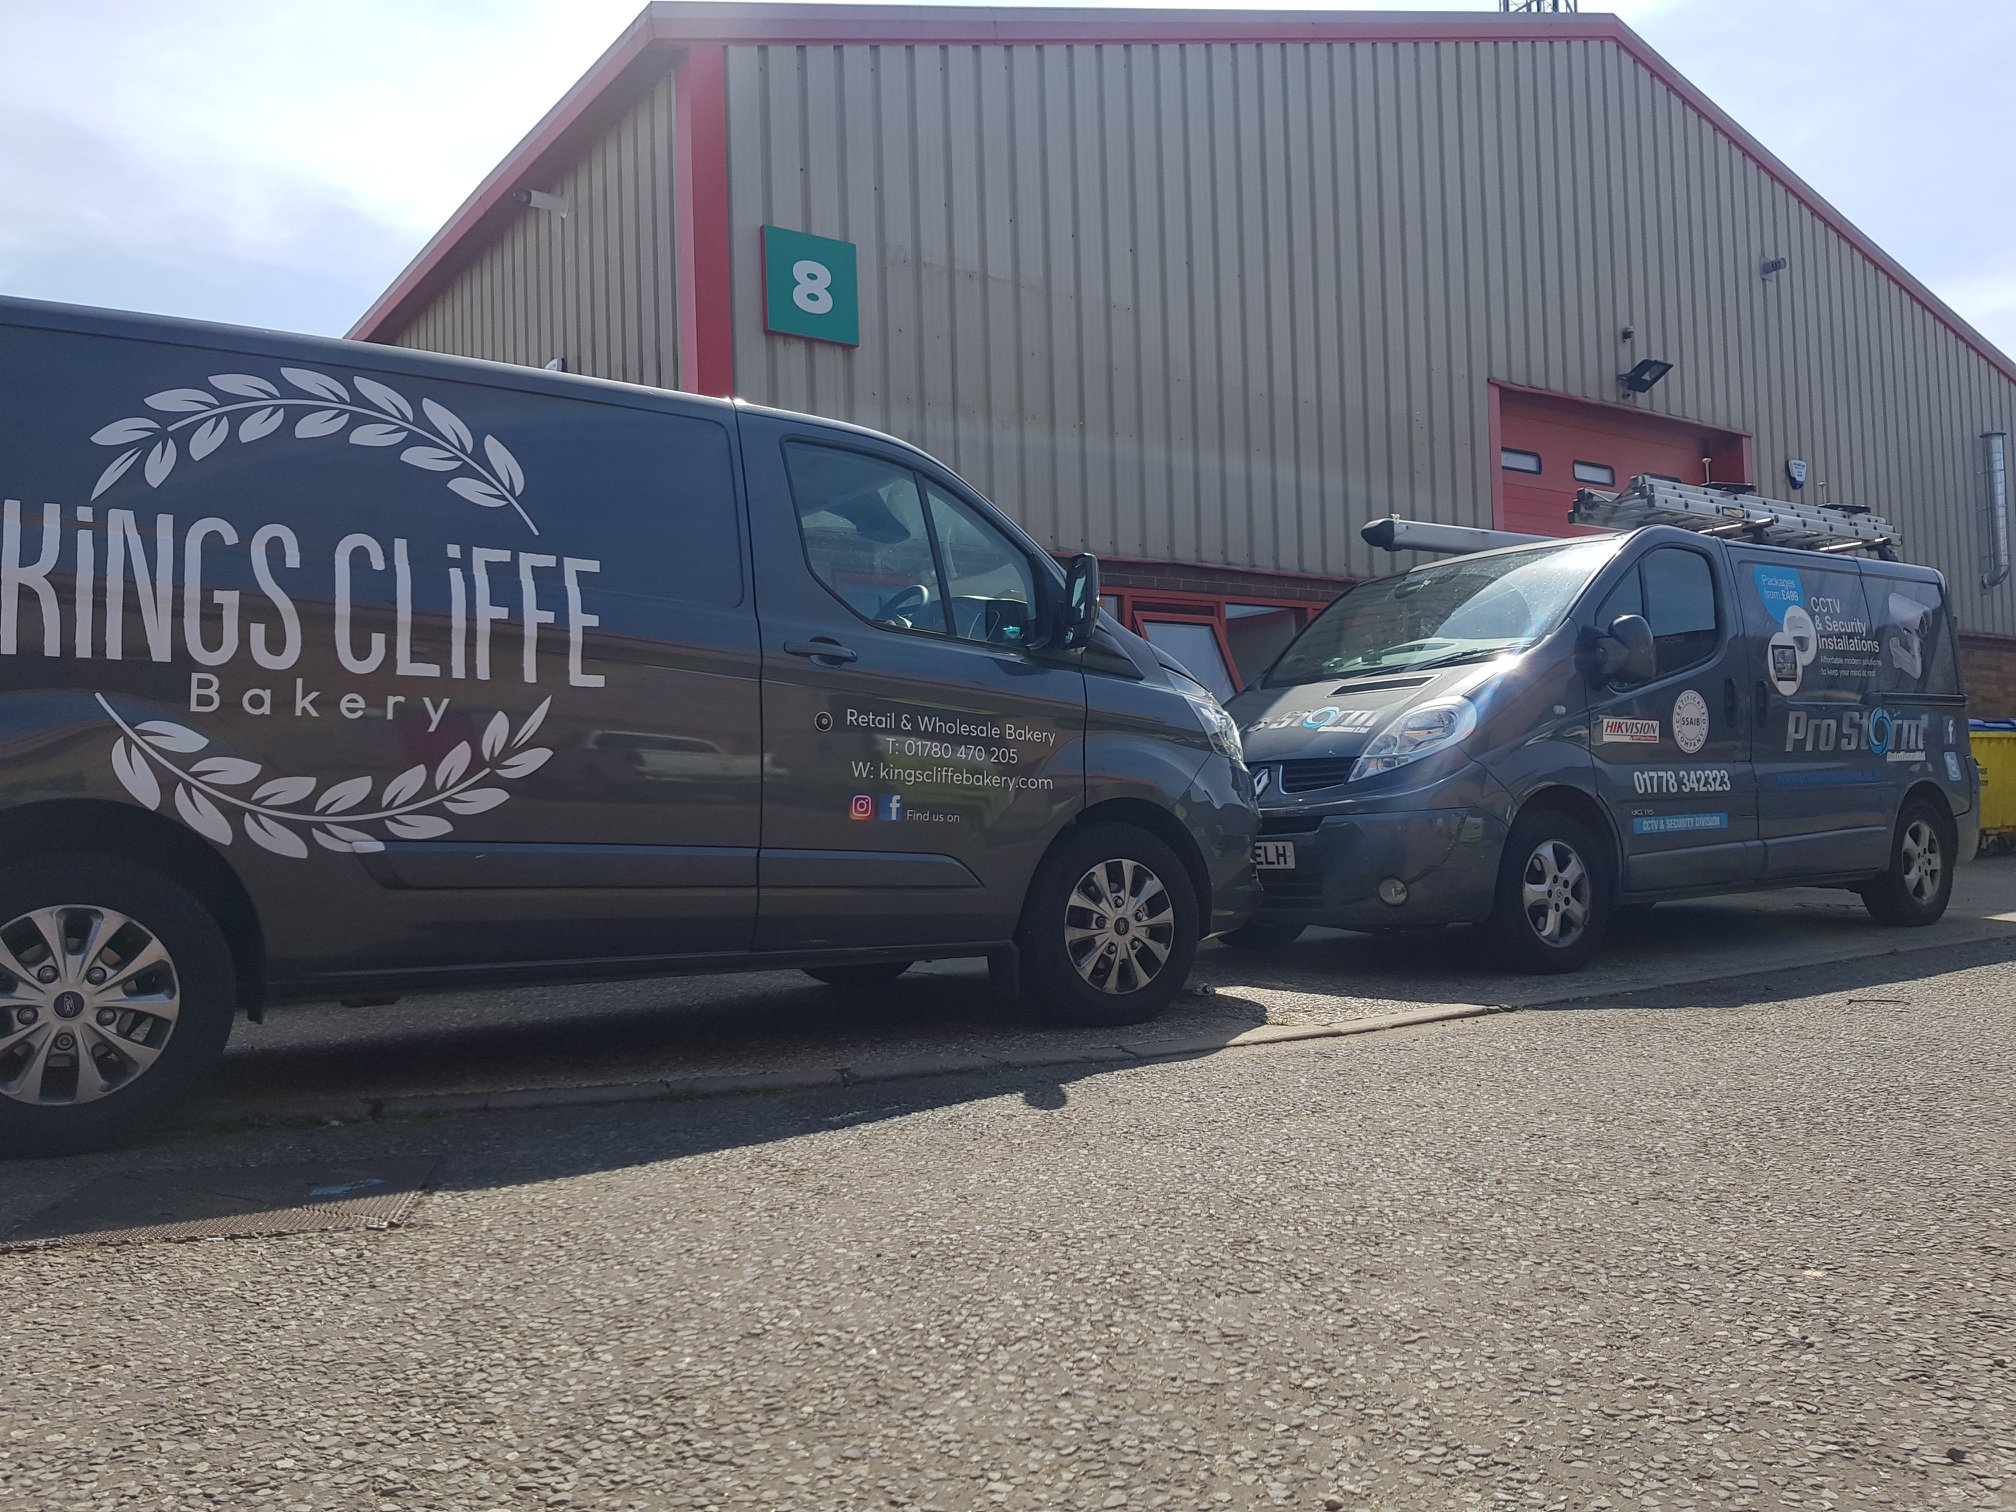 Successful commercial CCTV installation at Kings Cliffe Bakery